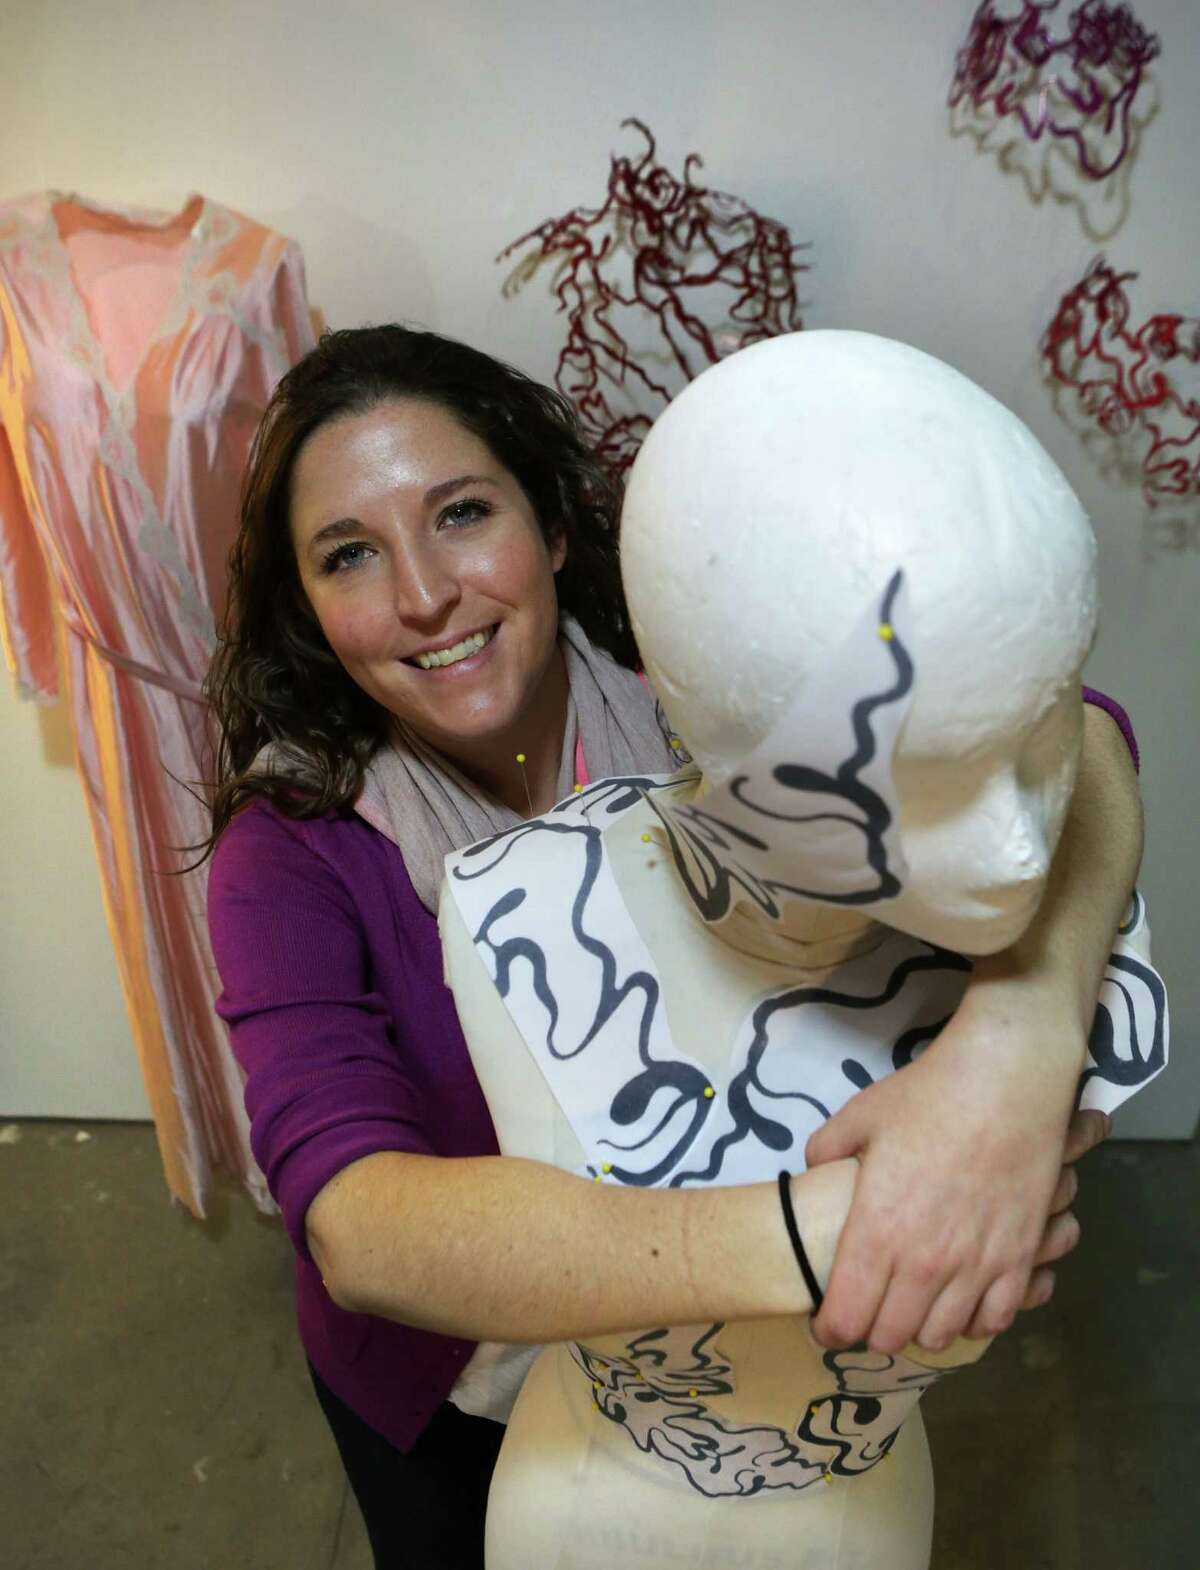 """Sarah Roberts, a graduate of Texas Tech University, is one of the artists who is participating in this year's """"On and Off Fredericksburg Road Studio Tour"""". Her artwork explores the trauma of loss, having lost her mother to breast cancer at an early age."""